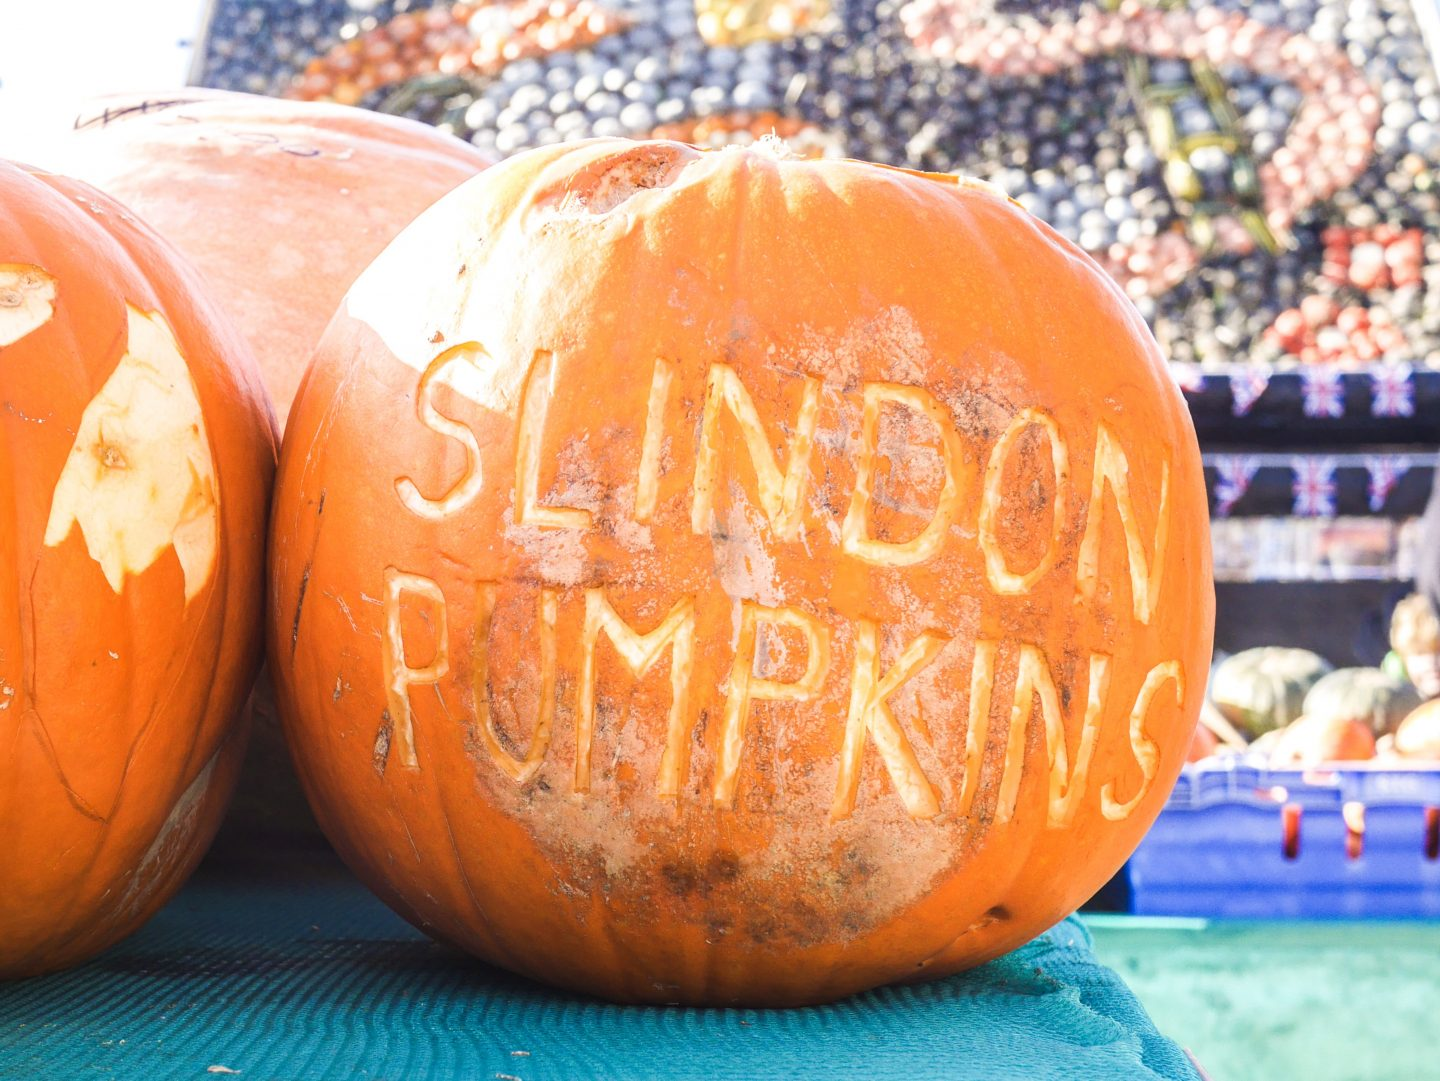 Slindon Pumpkins & The Bridle Road to Bignor